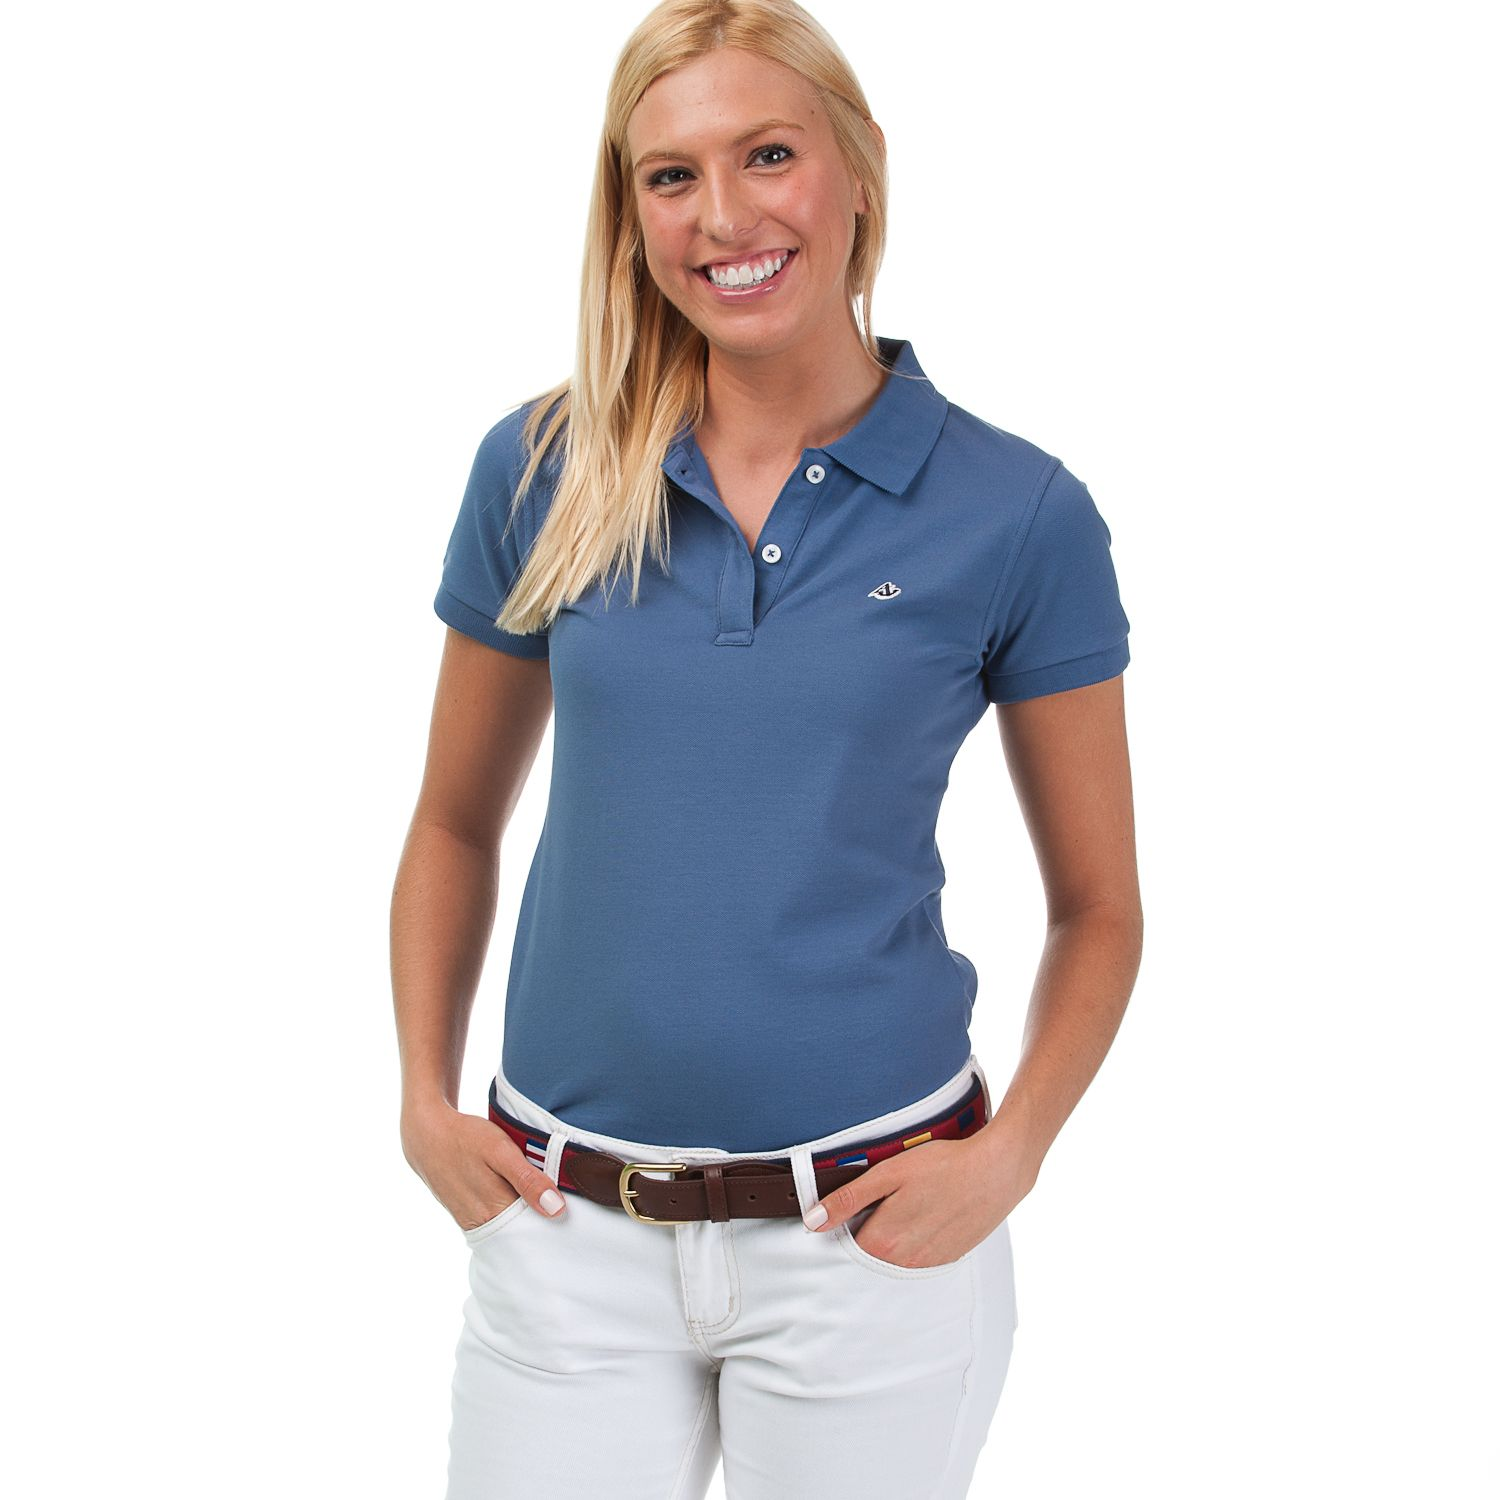 Sailors Navy Ladies Polo By Anchored Style Everyday Outfit